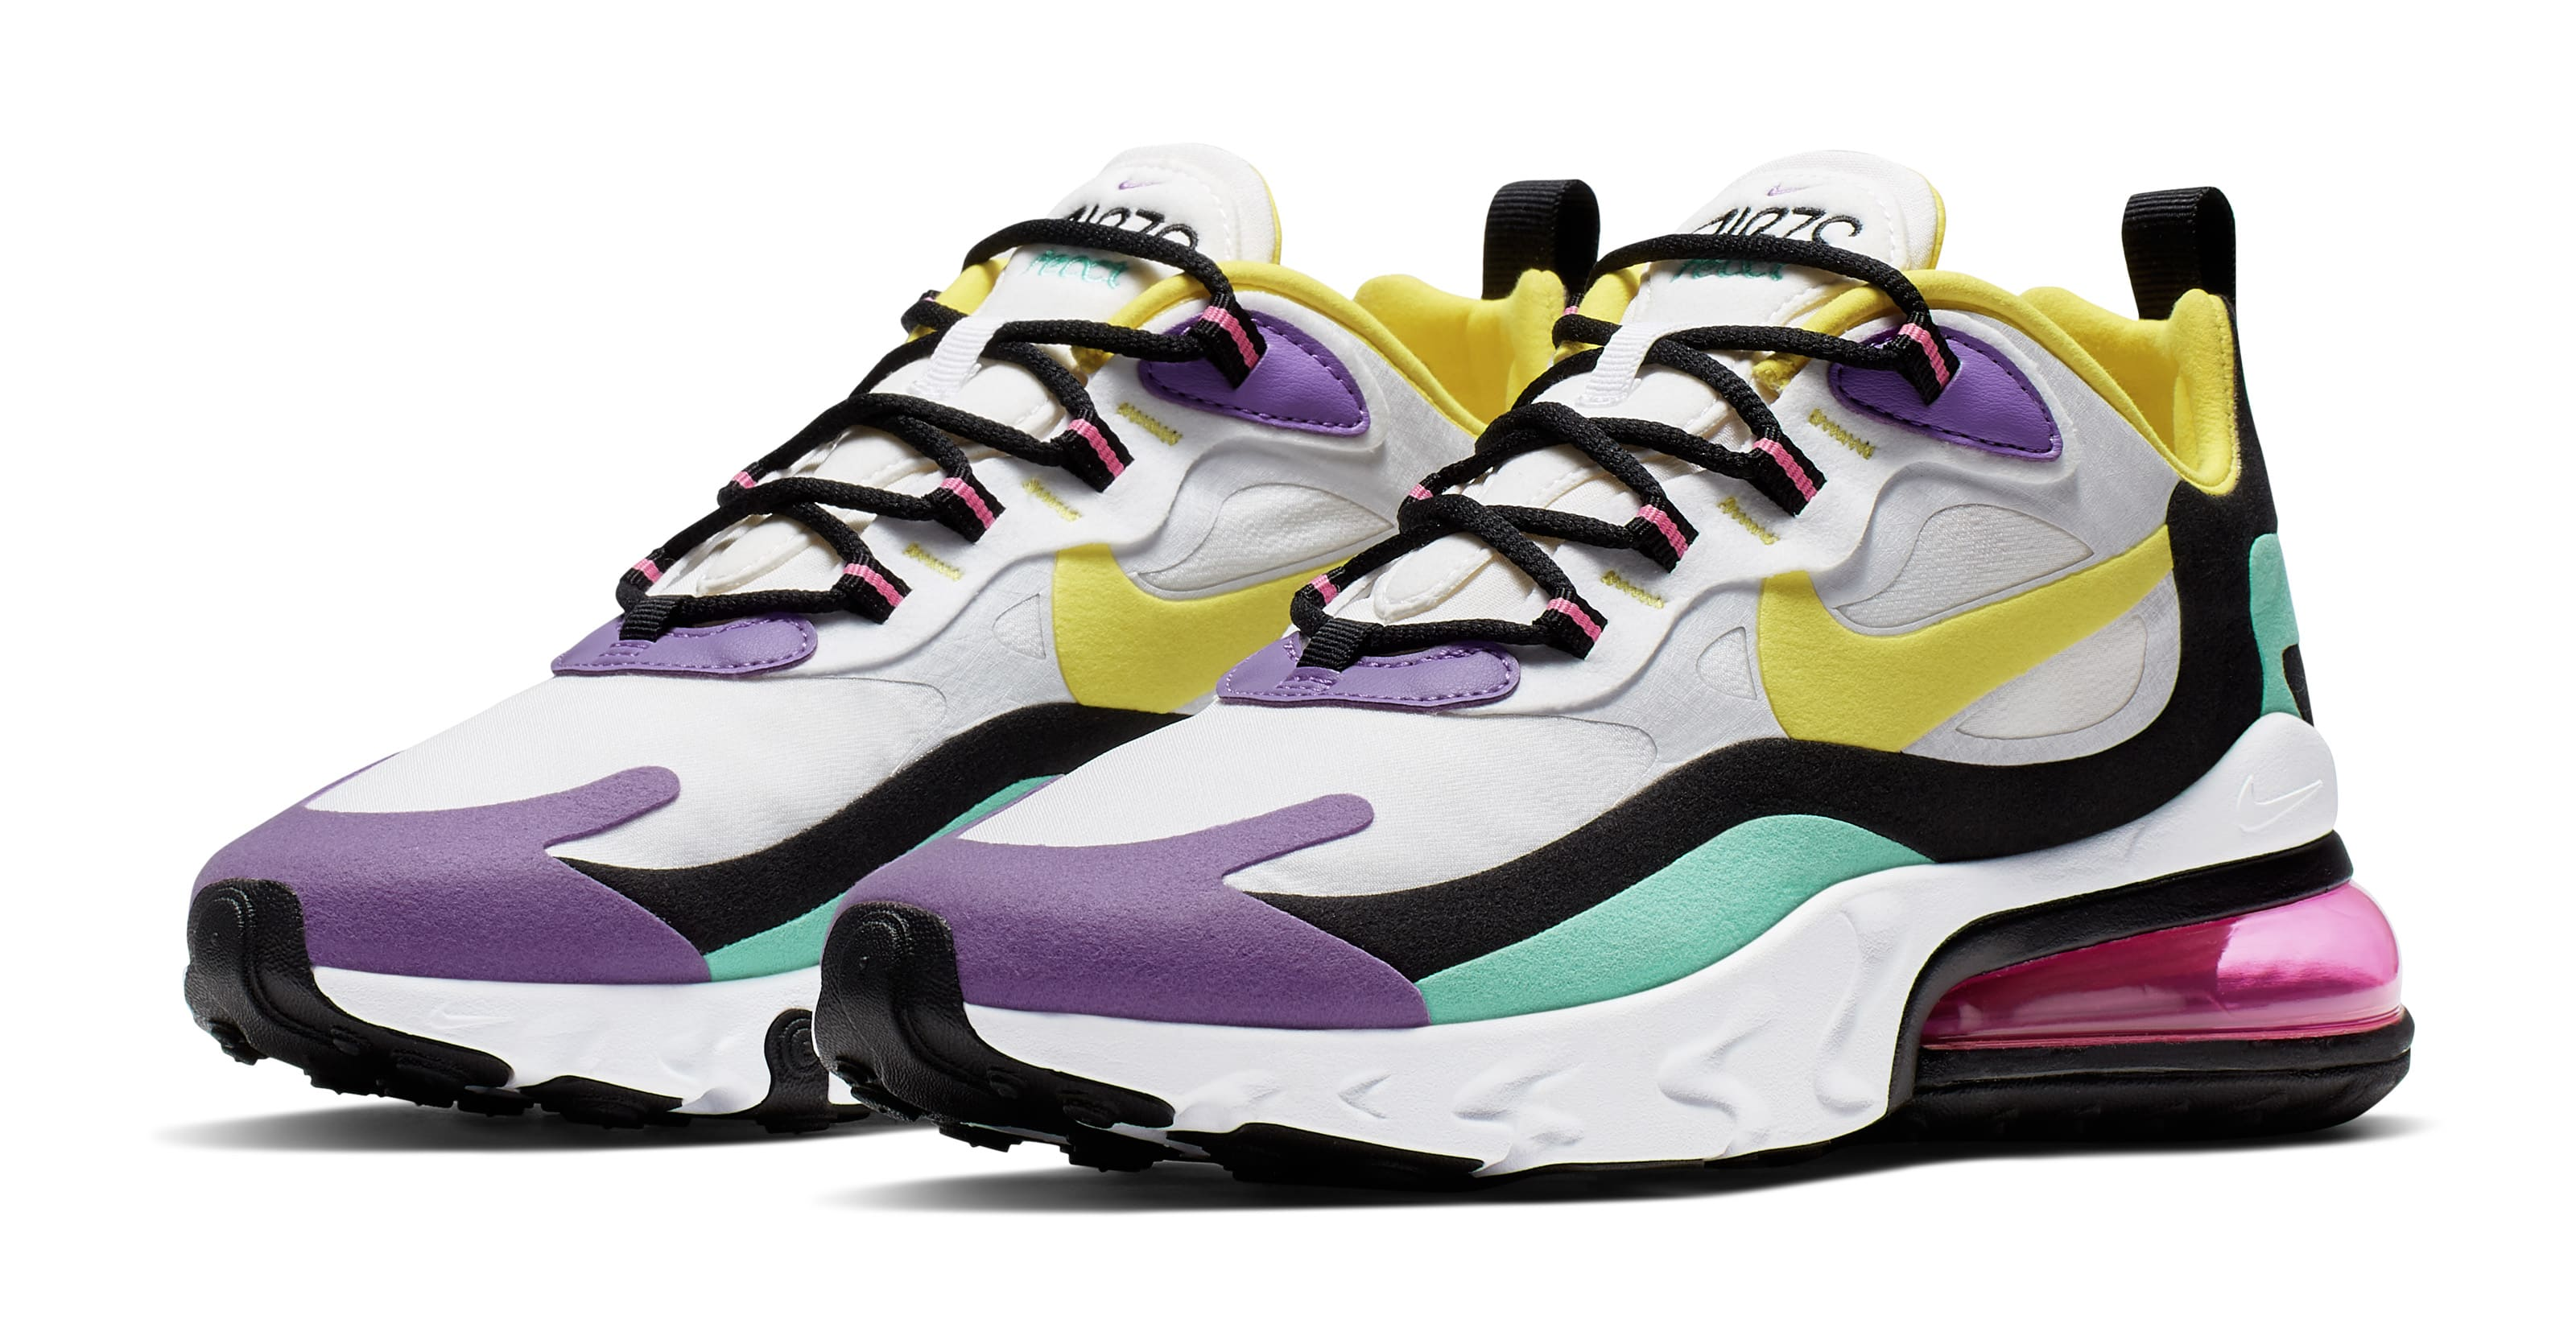 Modern Is Way Air Classic Nike 270 Form On Of In A Max The 34j5ARL